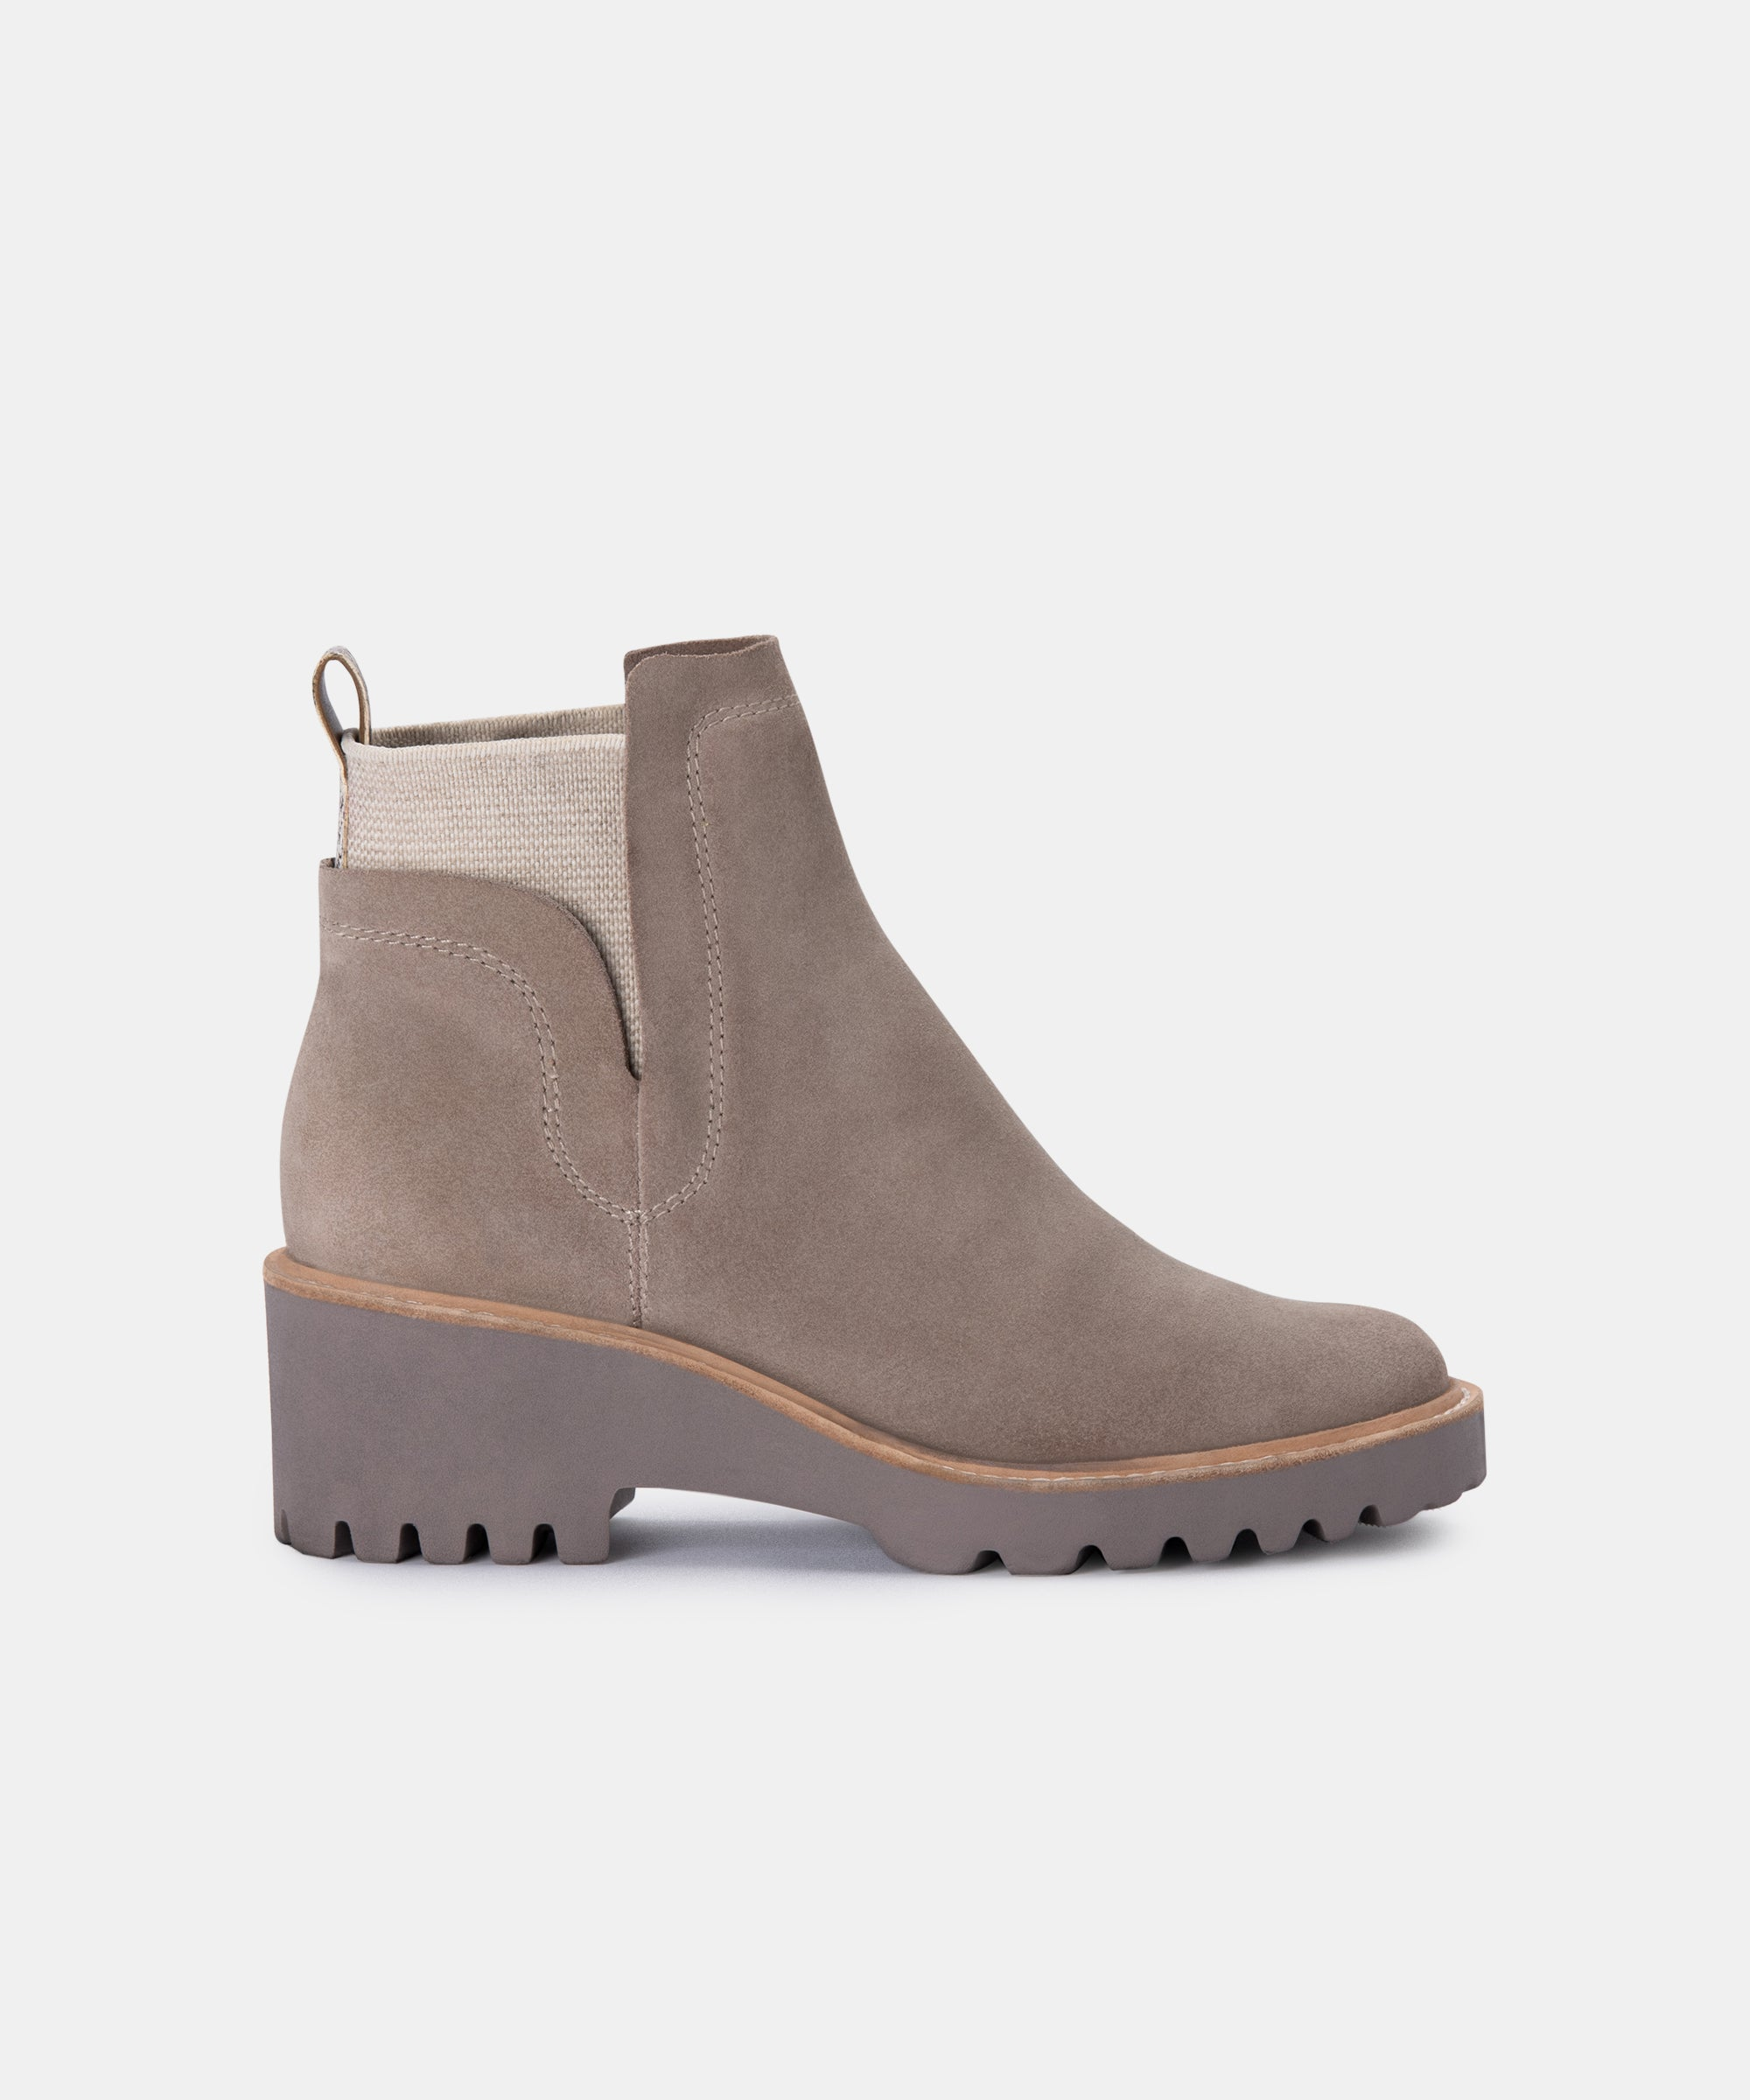 HUEY BOOTIES IN ALMOND